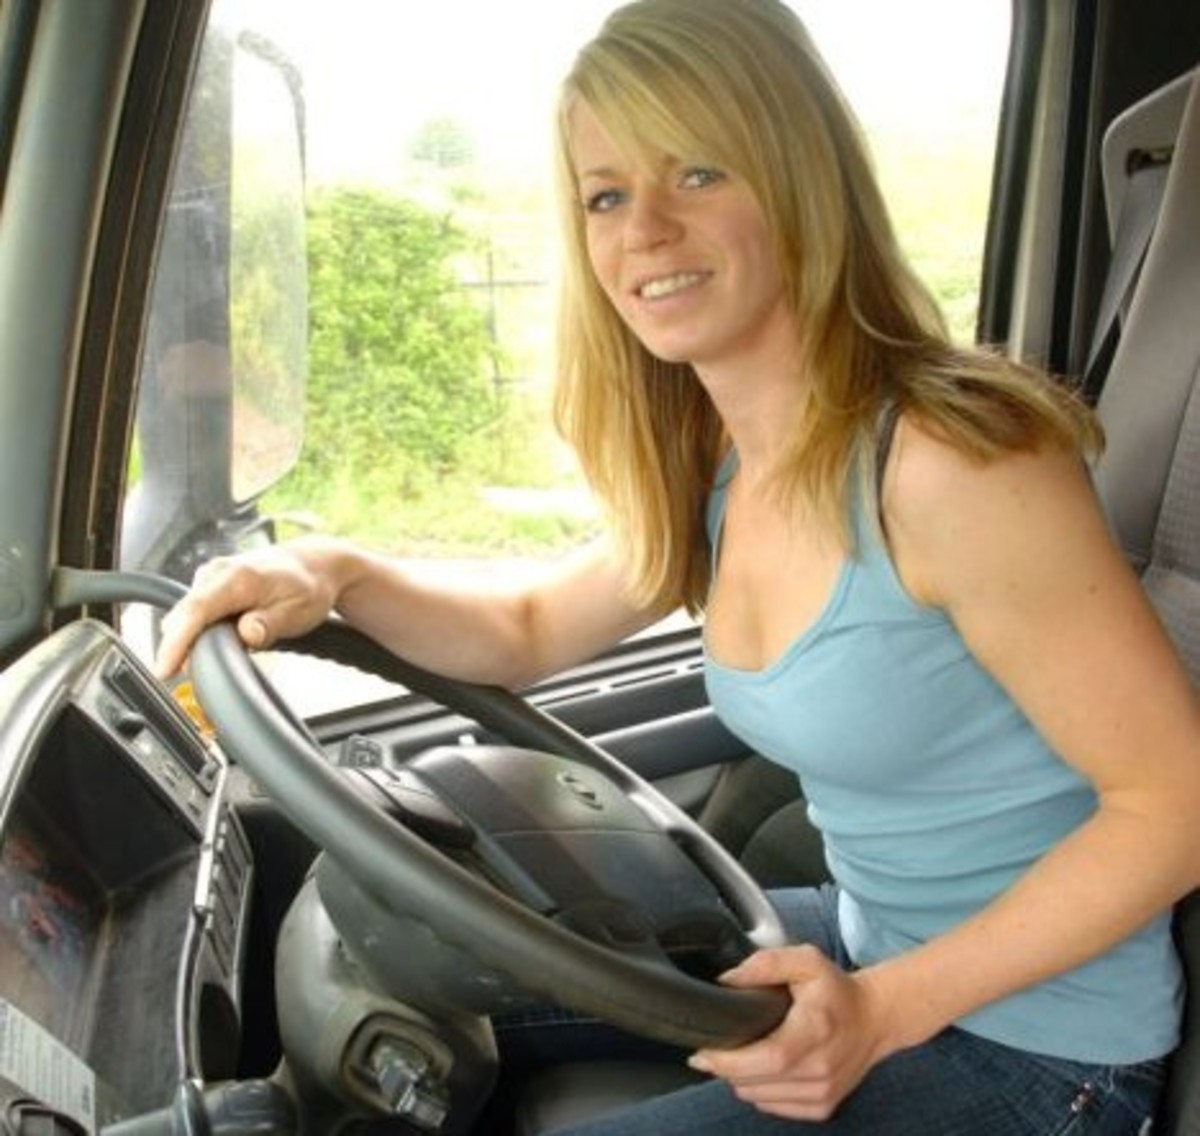 Yes, even the pretty ladies know how to handle a diesel rig as good as any man.